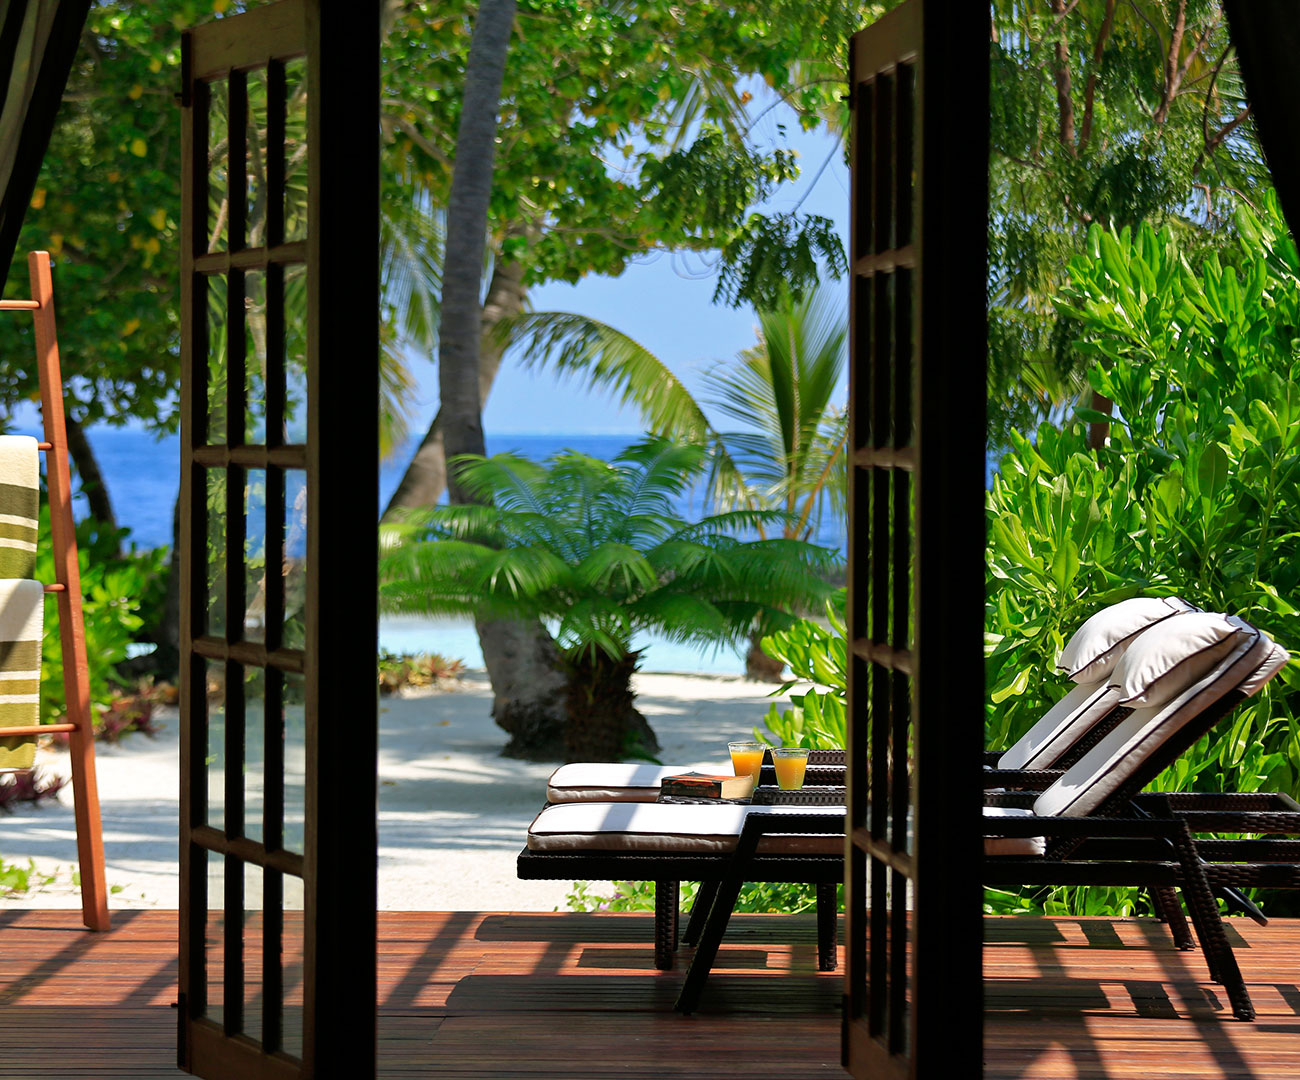 Kurumba Maldives - Presidential Pool Villa - Balcony View Image - Maldives Resorts